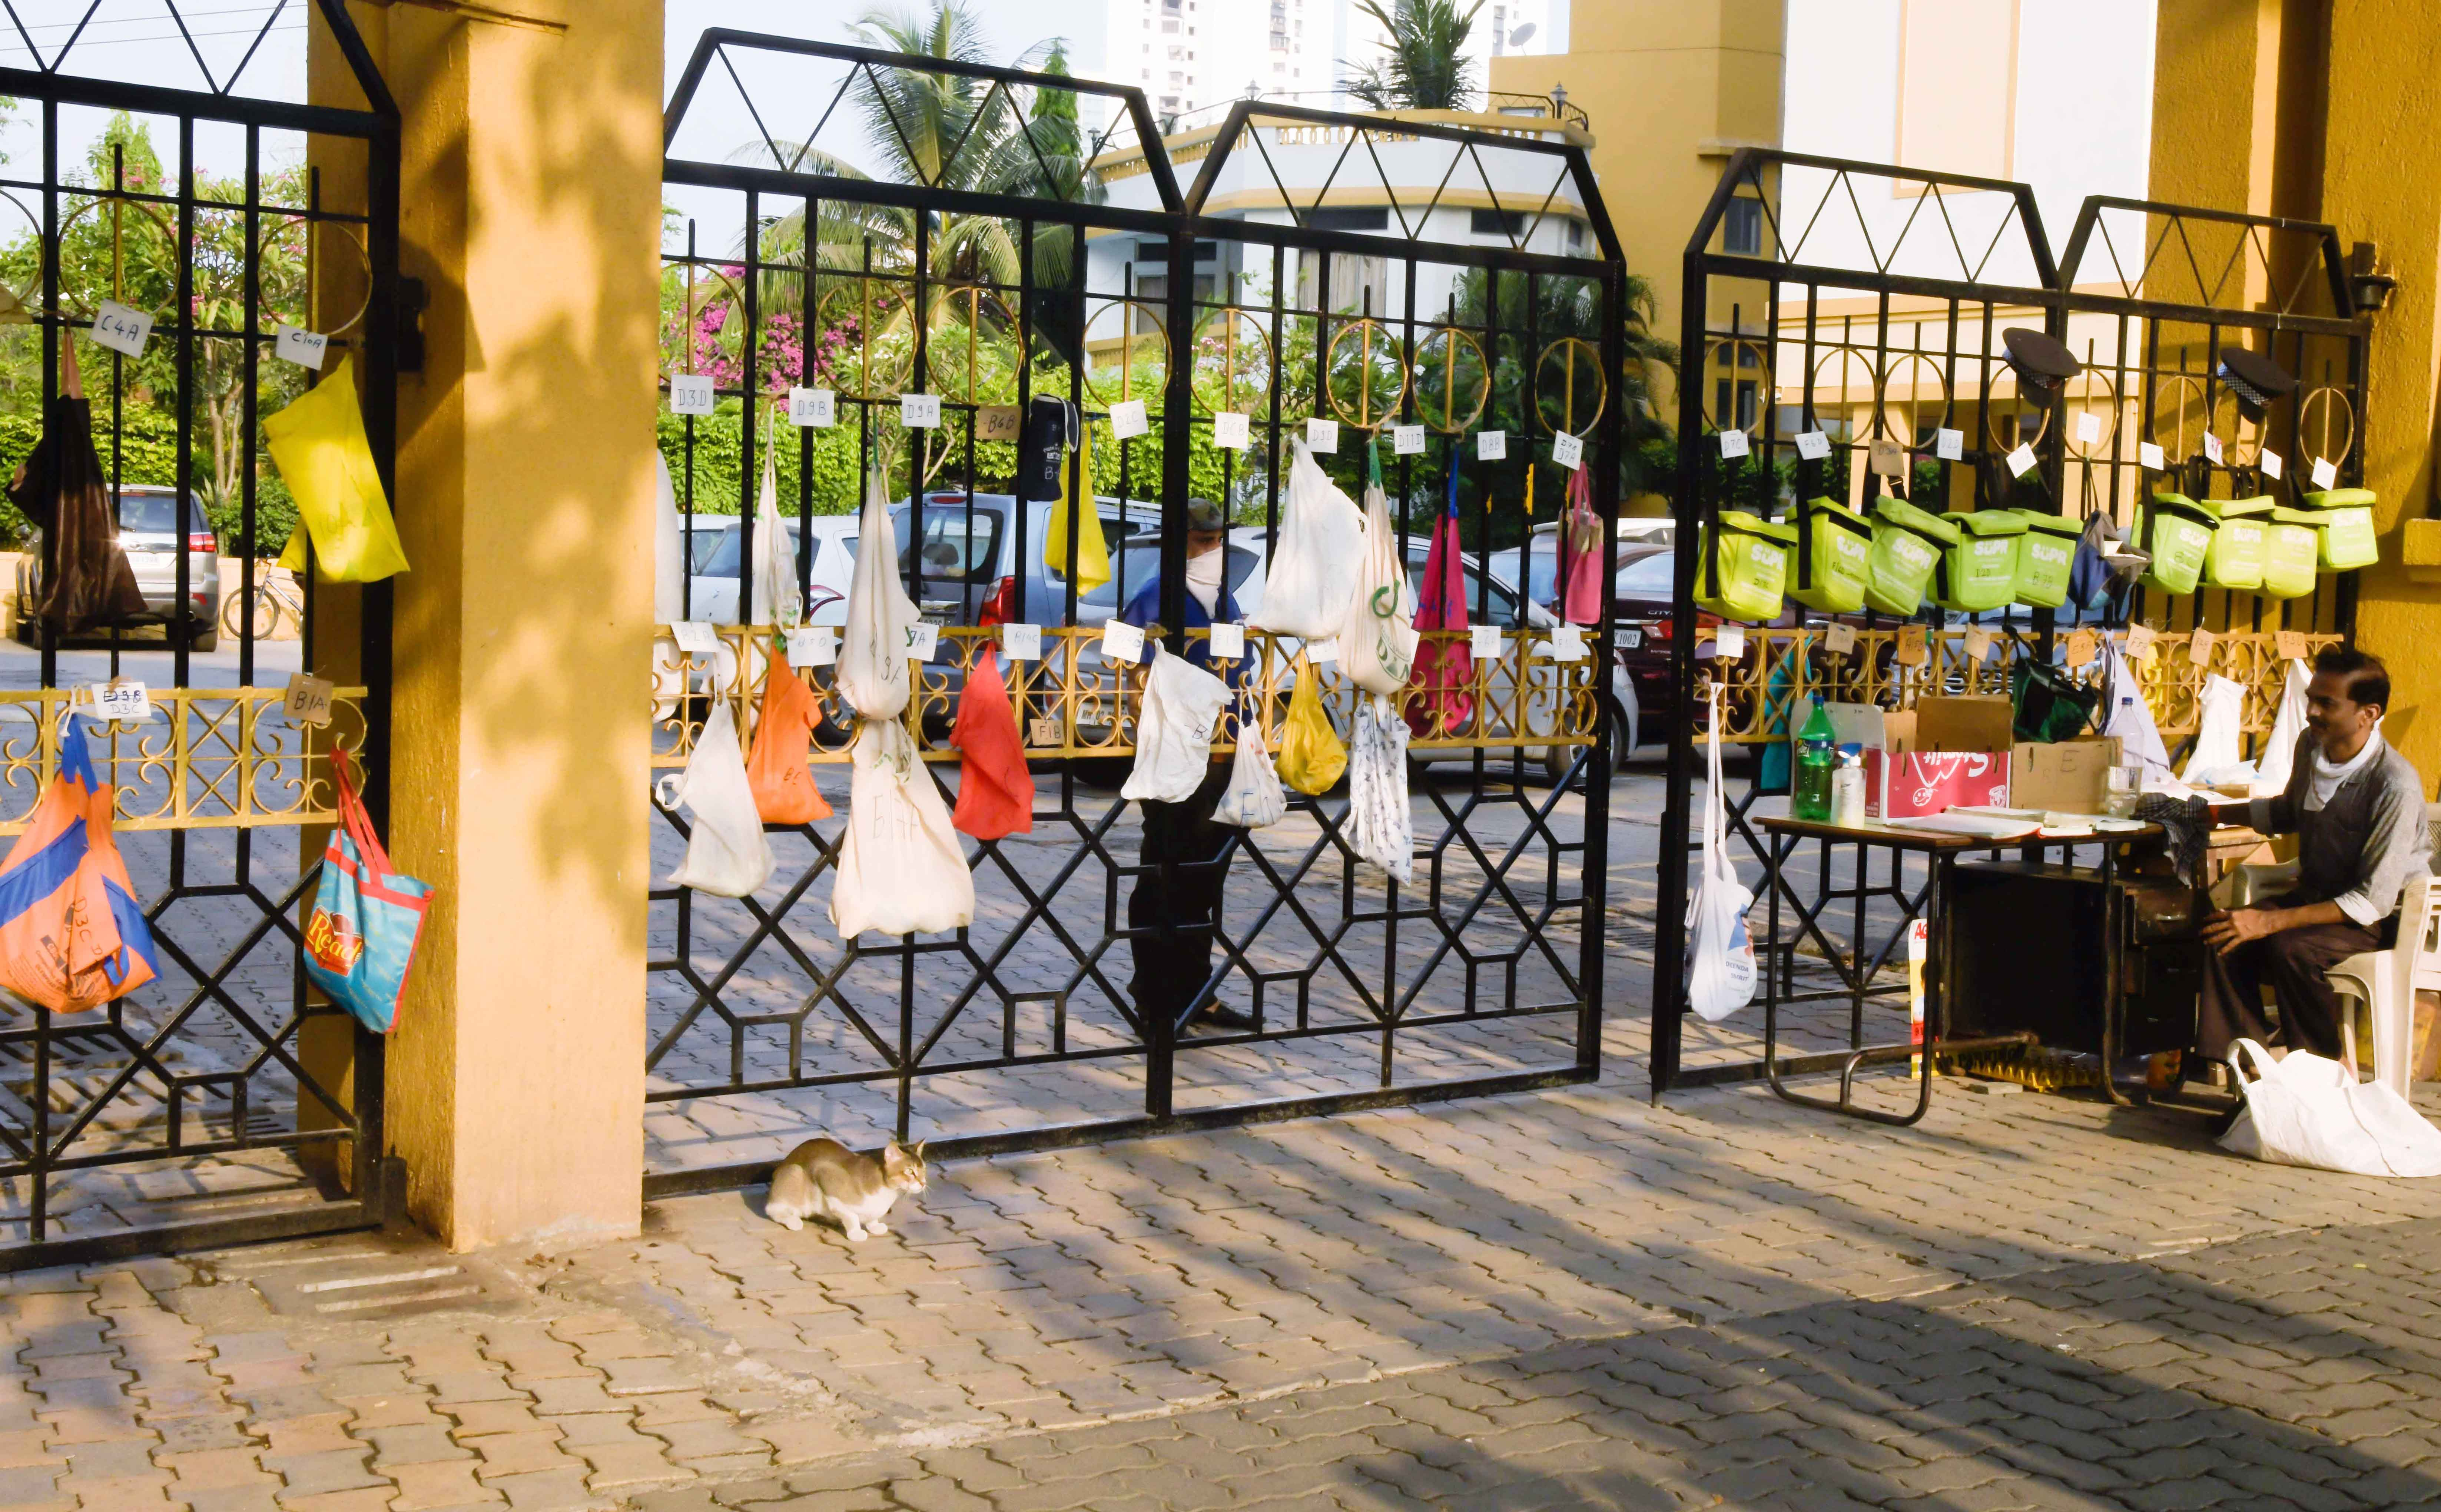 Bags for the milkman to drop in milk pouches hang on the gate of a residential complex during a nationwide lockdown to control the spread of the coronavirus, in Mumbai on Sunday.